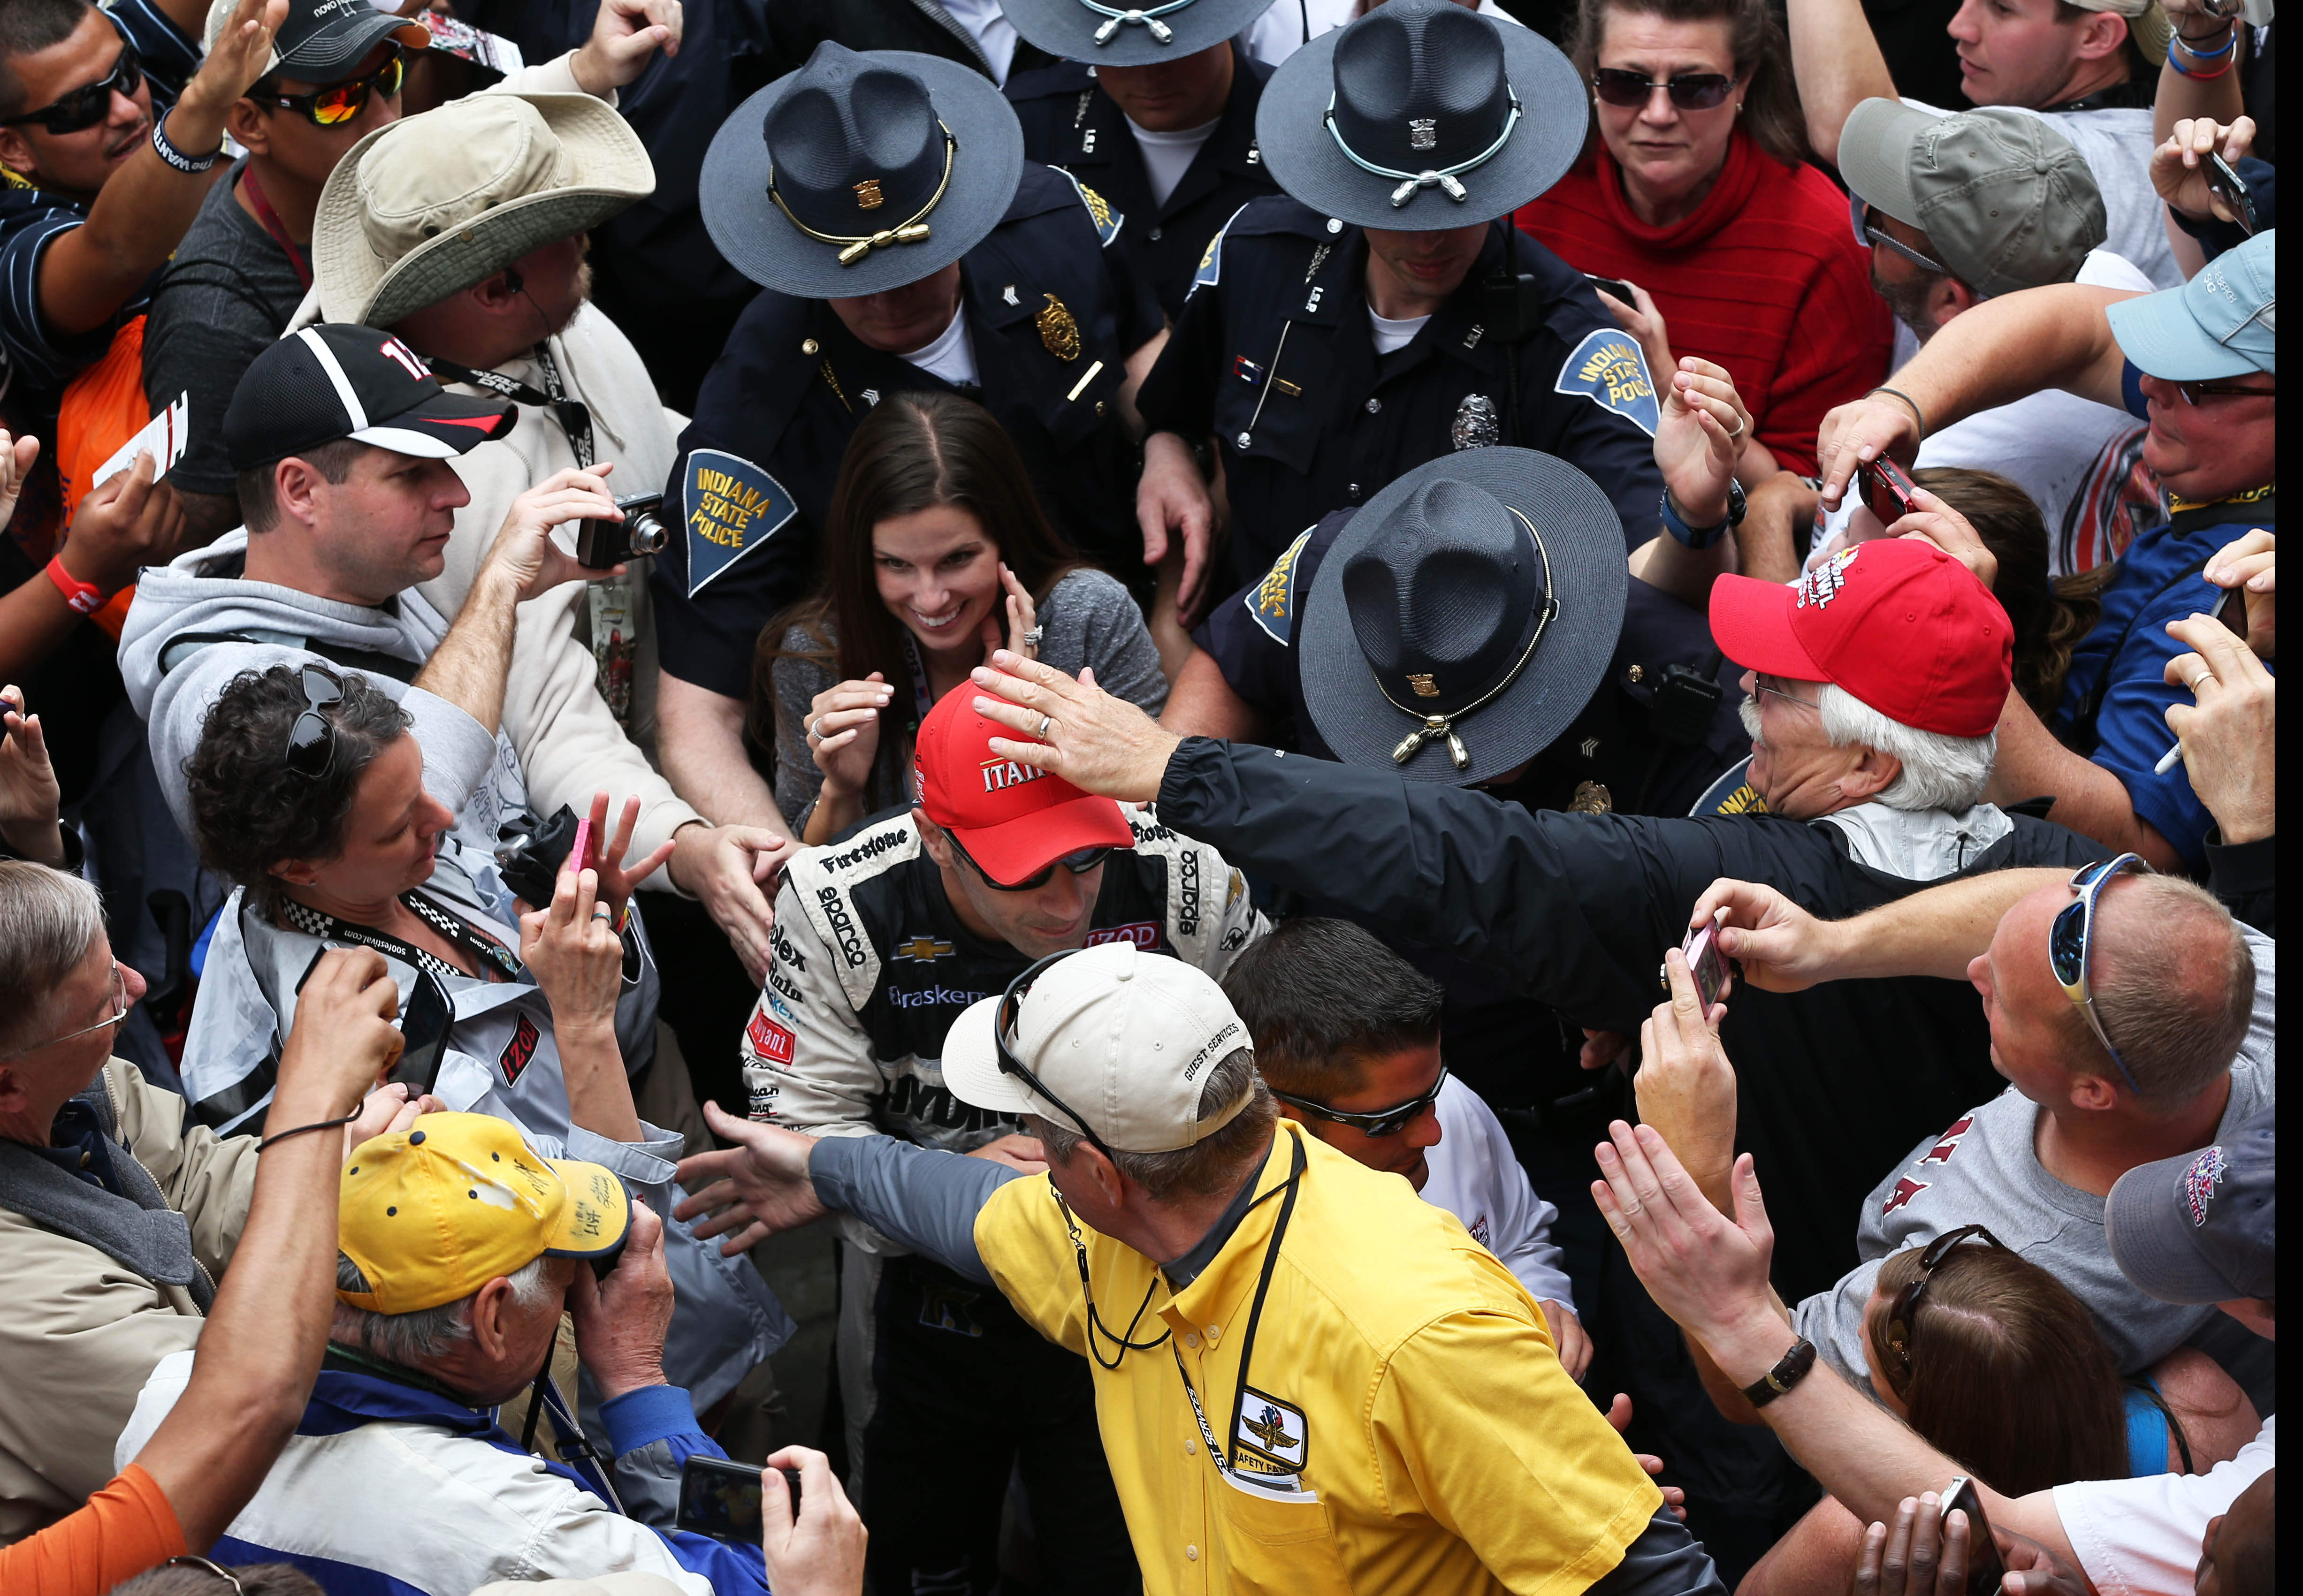 Fans at IMS congratulate Tony Kanaan on his first Indianapolis 500 victory. (USAT Sports)